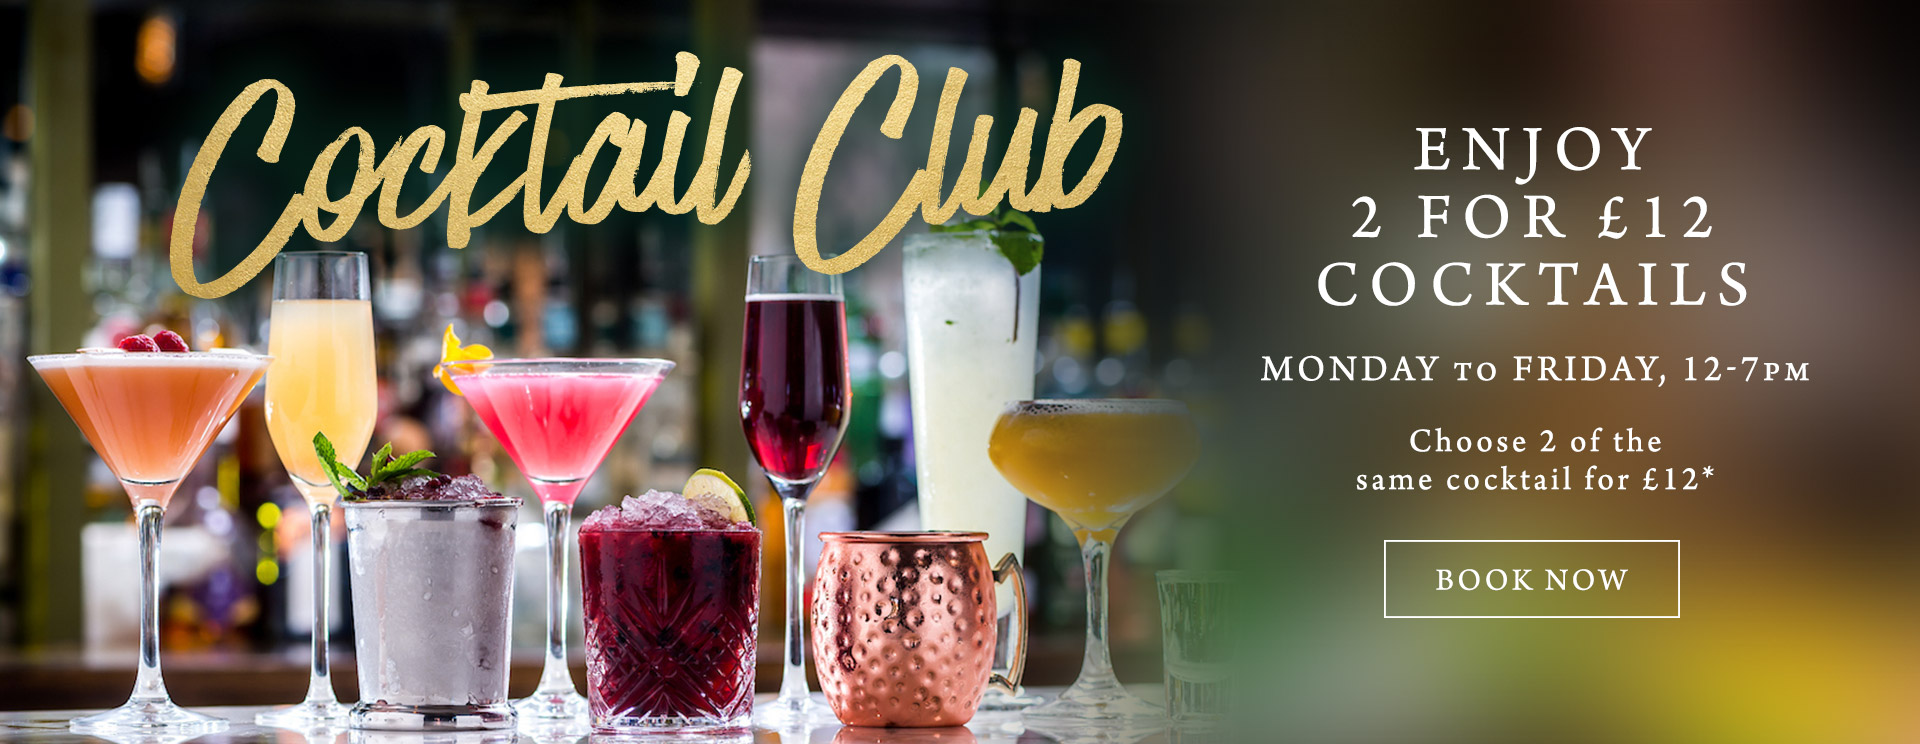 2 for £12 cocktails at The St George & Dragon